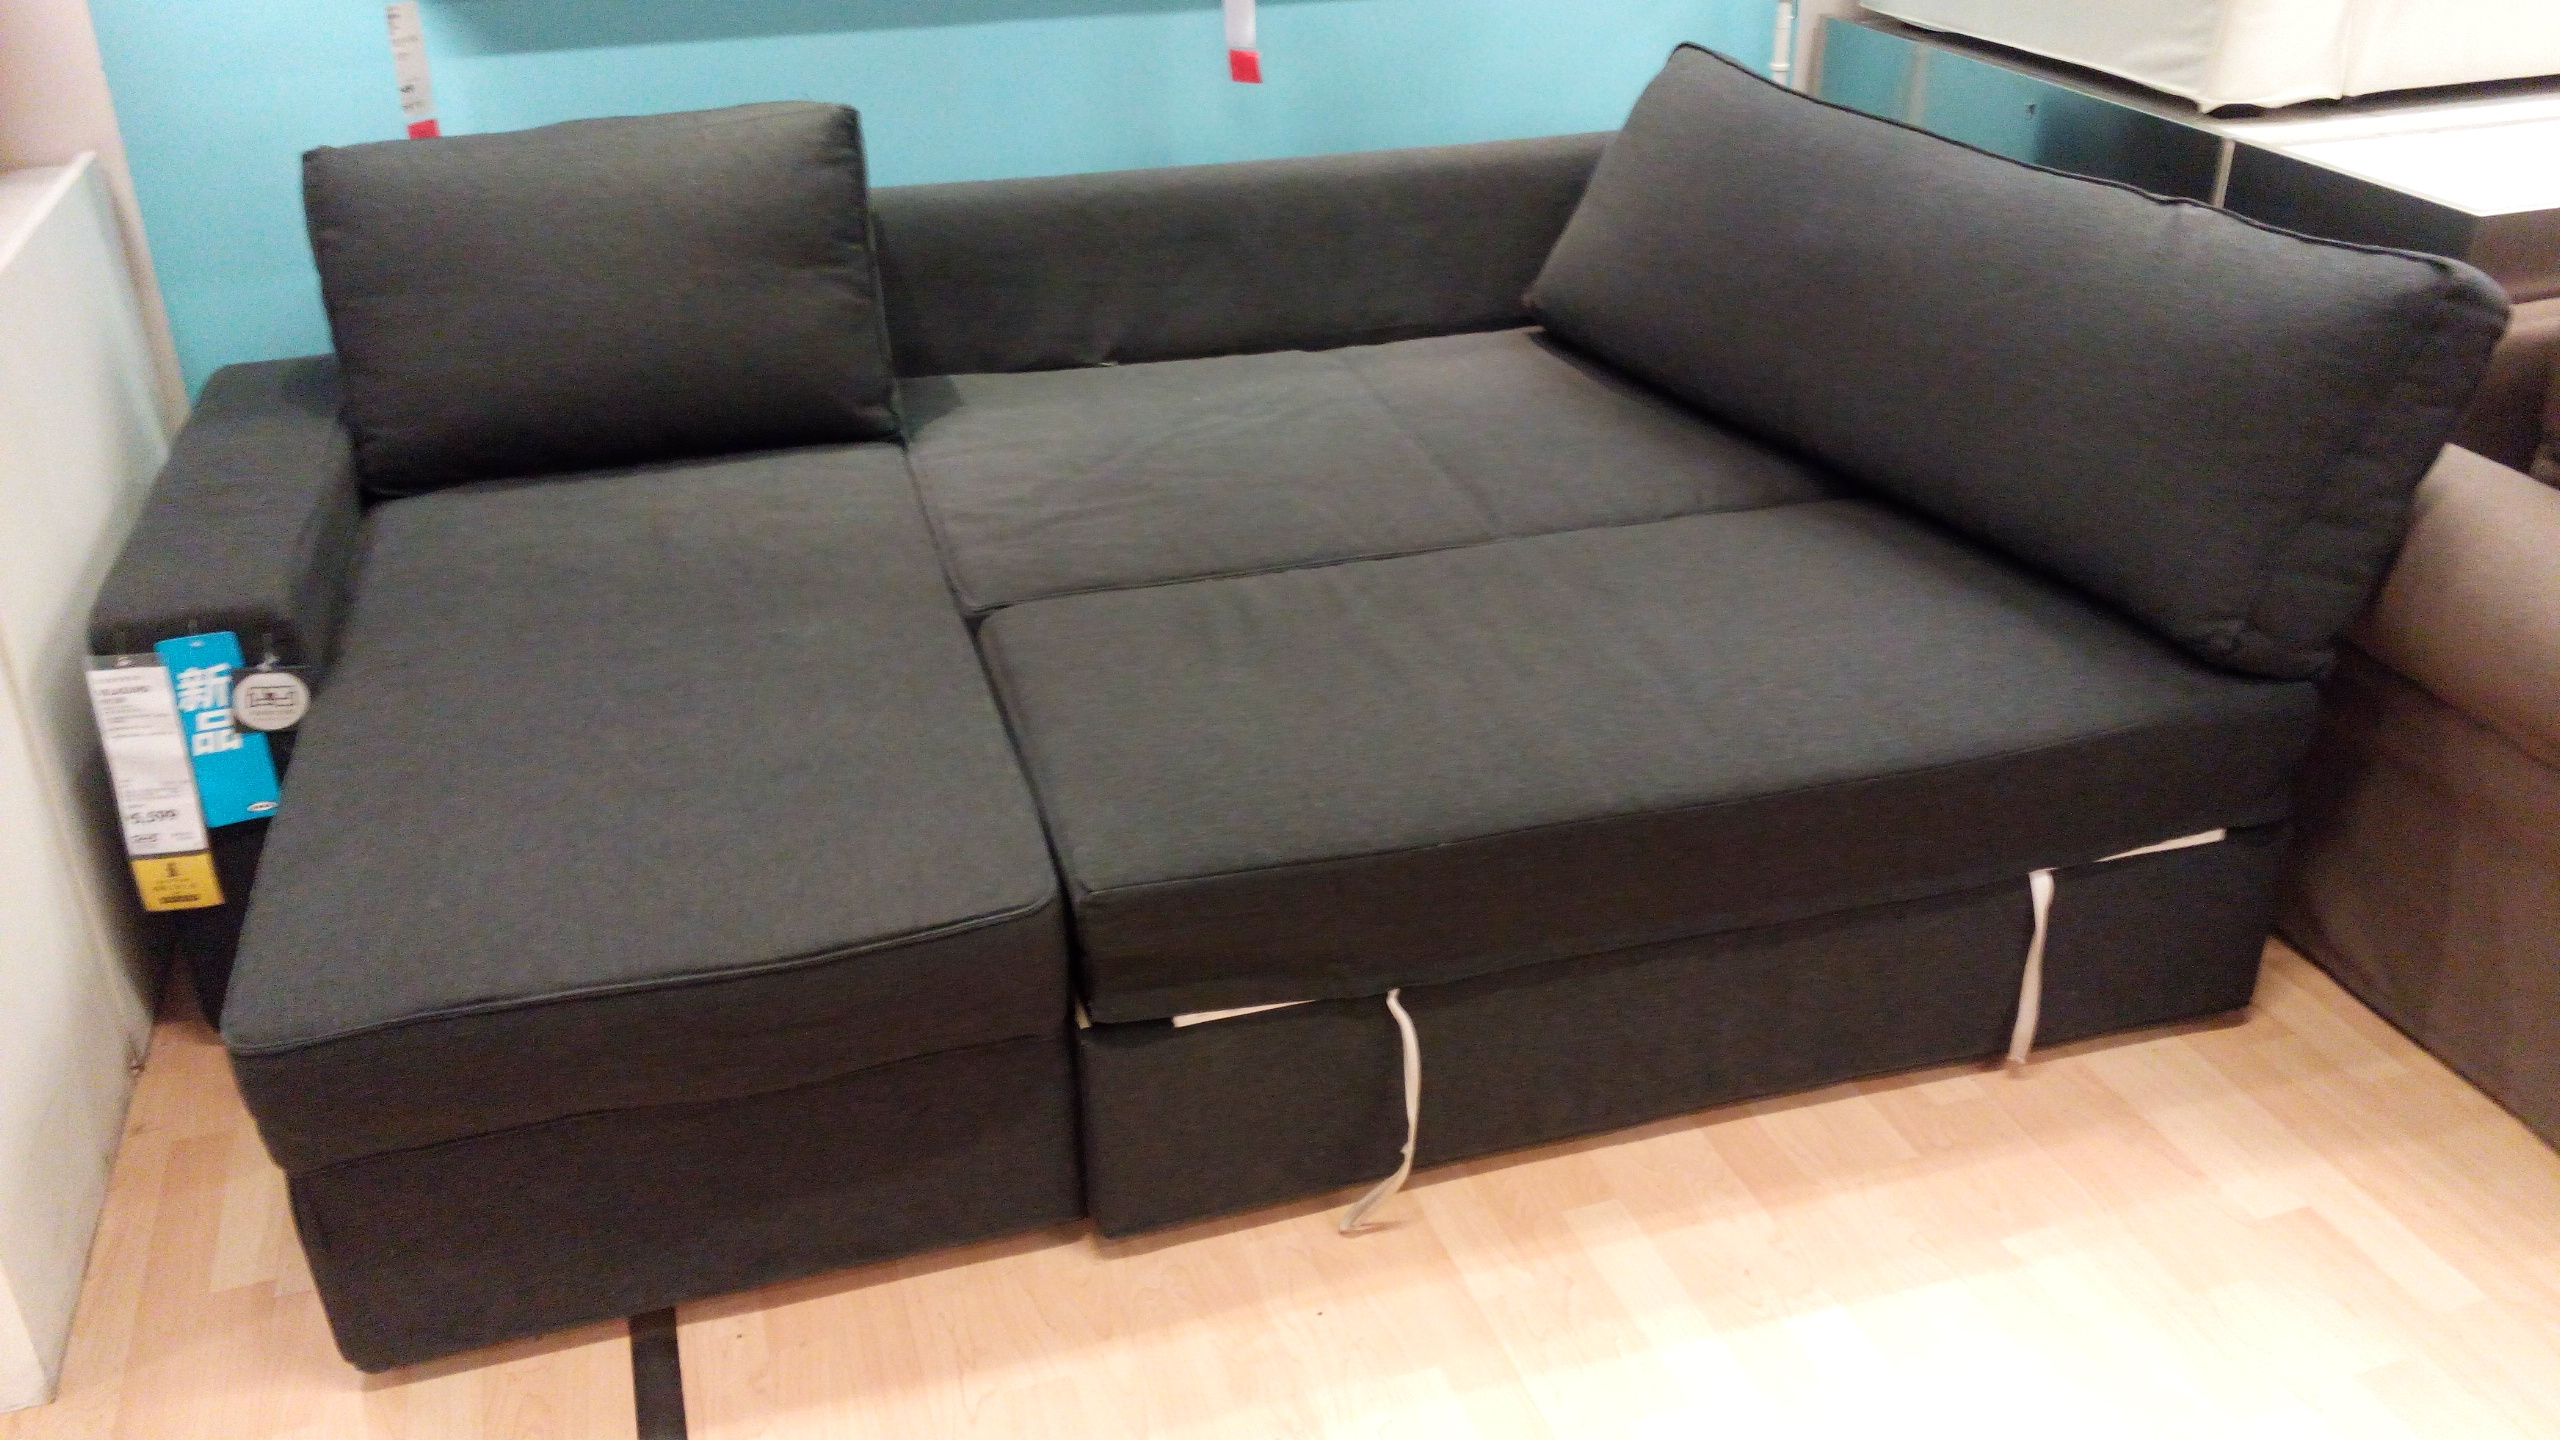 Furniture Luxury Sofa Bed Ikea For Home Furniture Ideas Nysben For Corner Sofa Bed With Storage Ikea (Image 9 of 15)